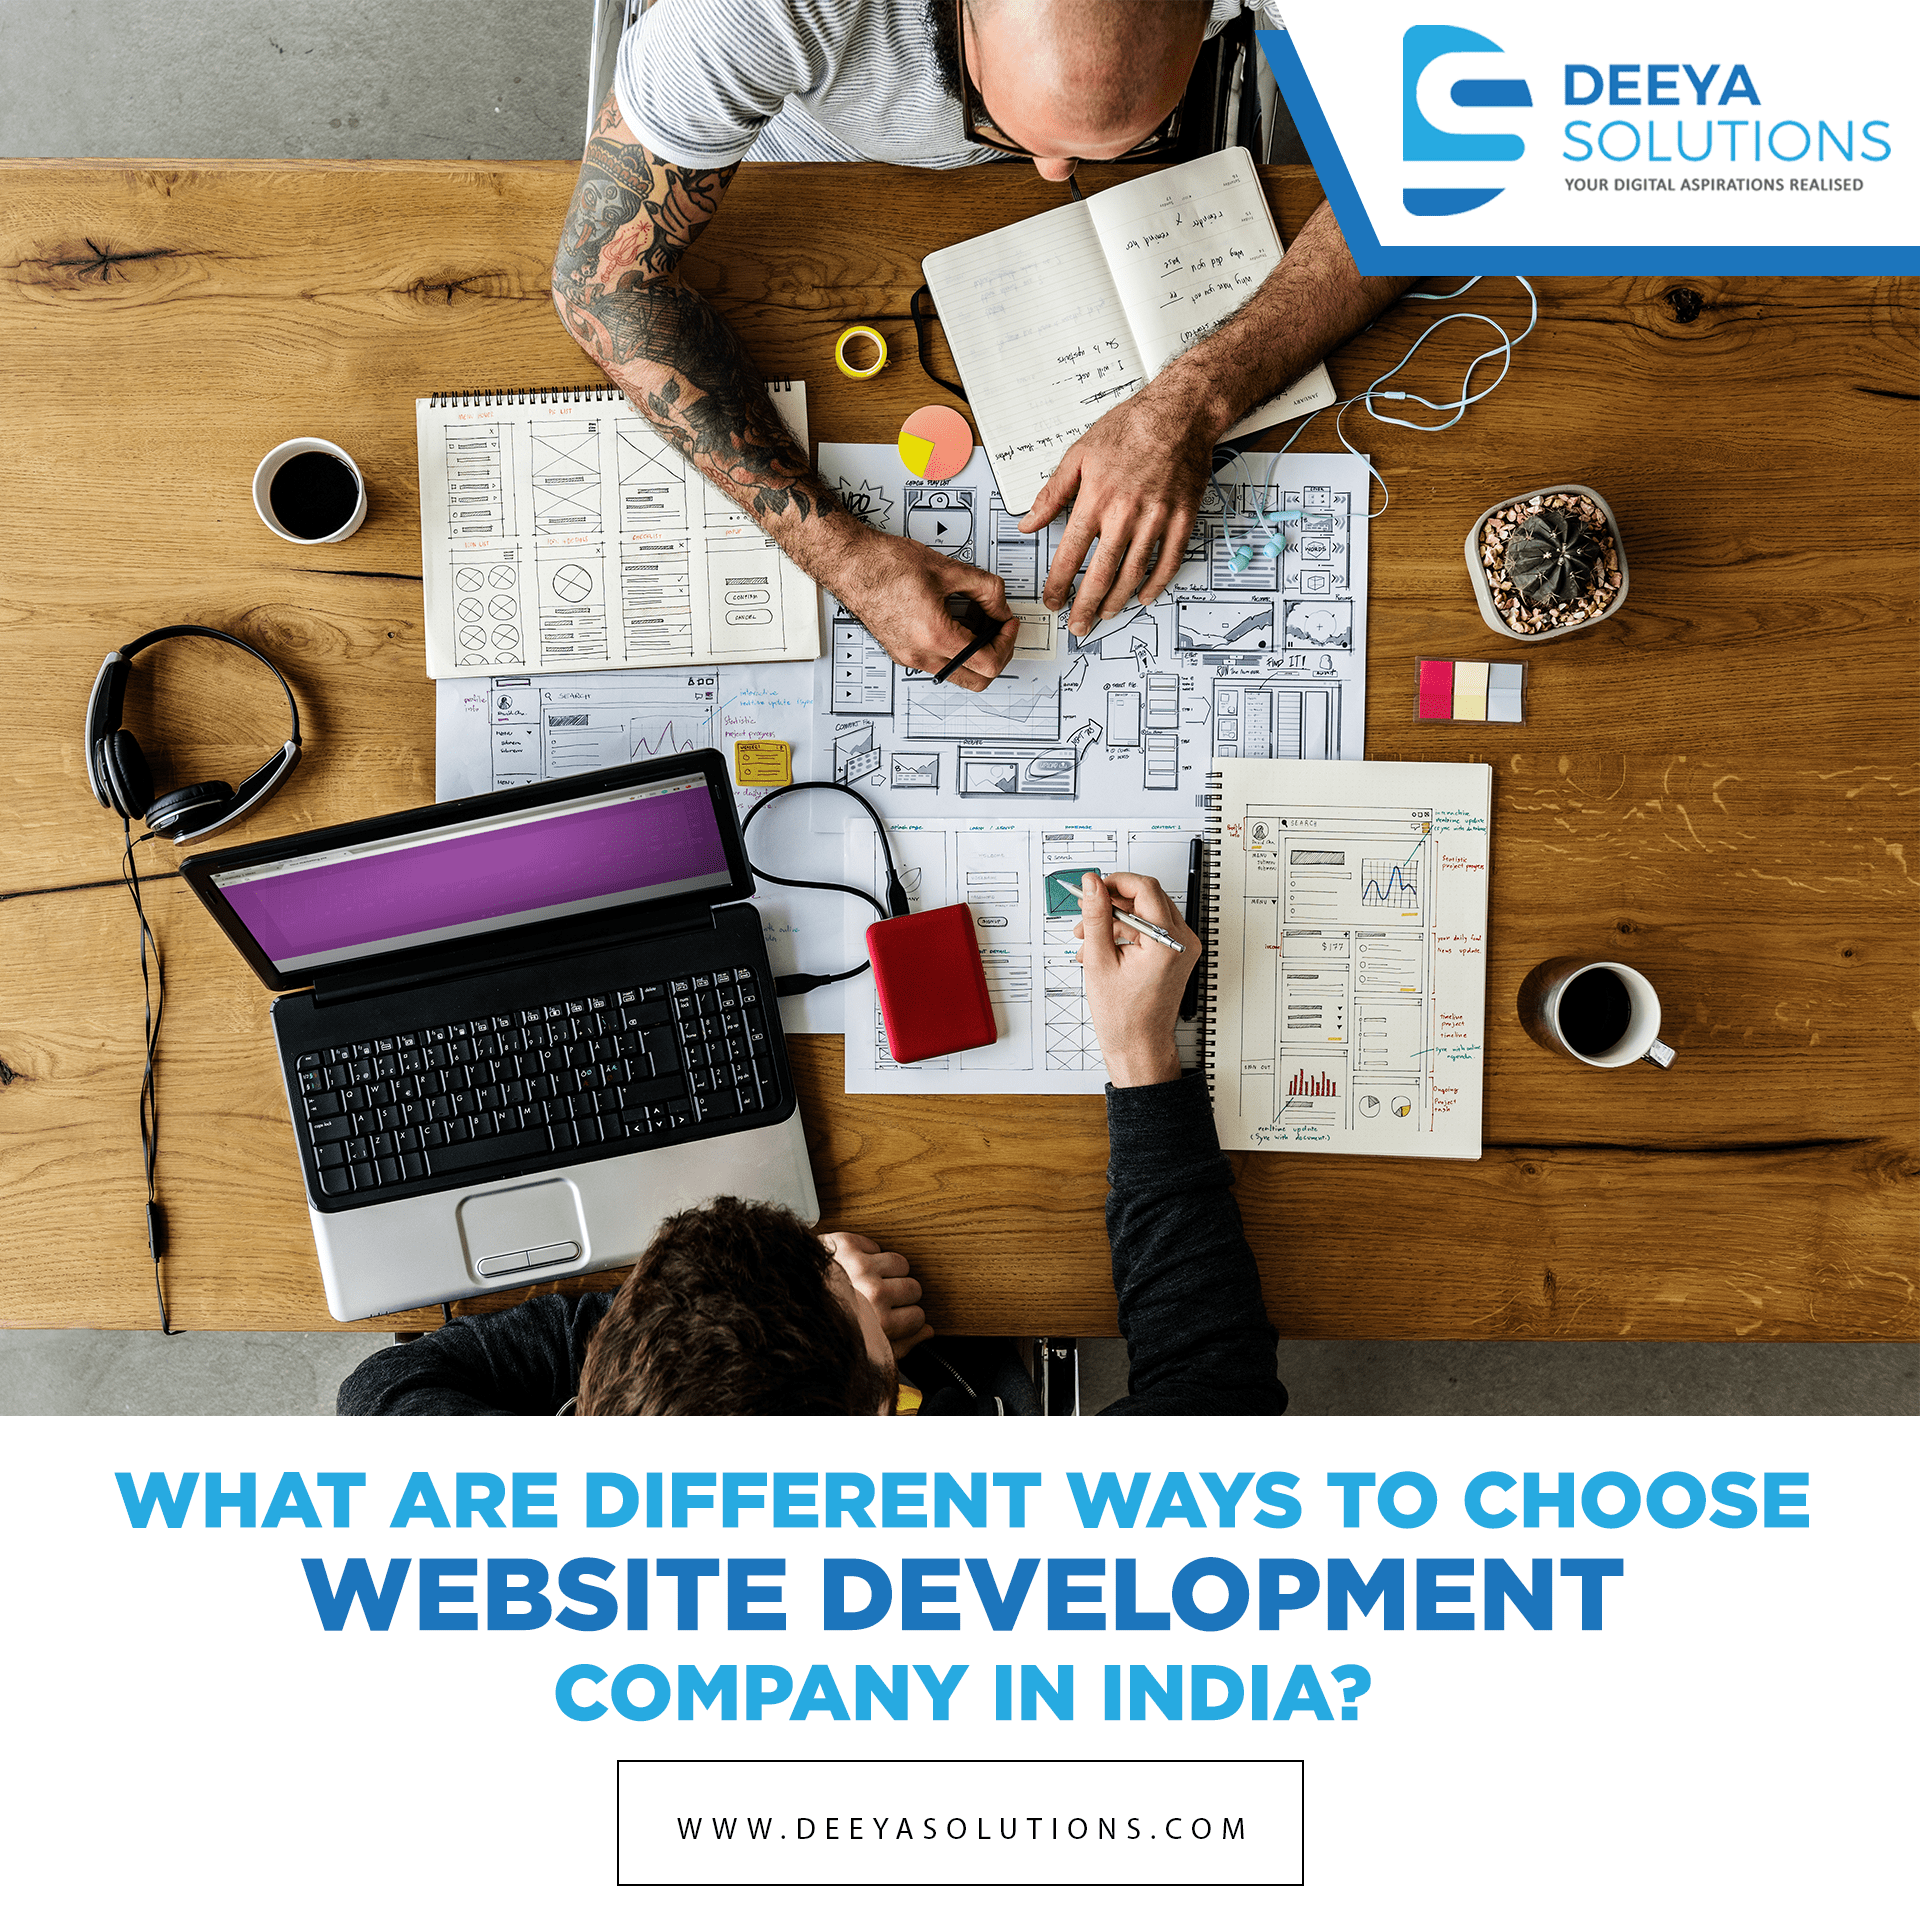 What are Different Ways to Choose Website Development Company In India?